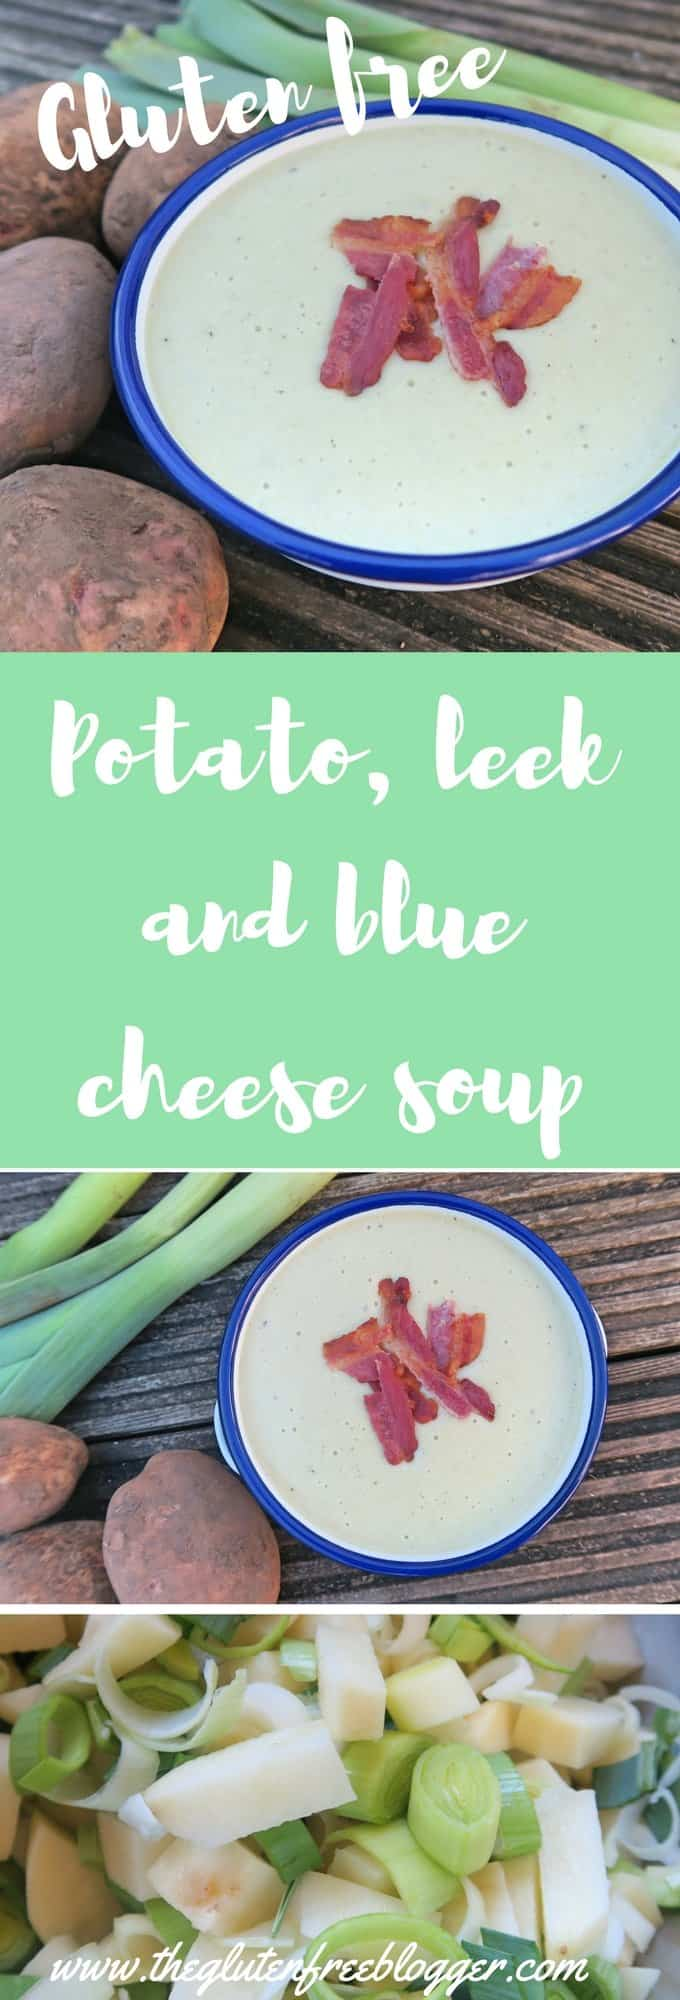 Gluten free soup - potato leek and blue cheese soup -www.theglutenfreeblogger.com